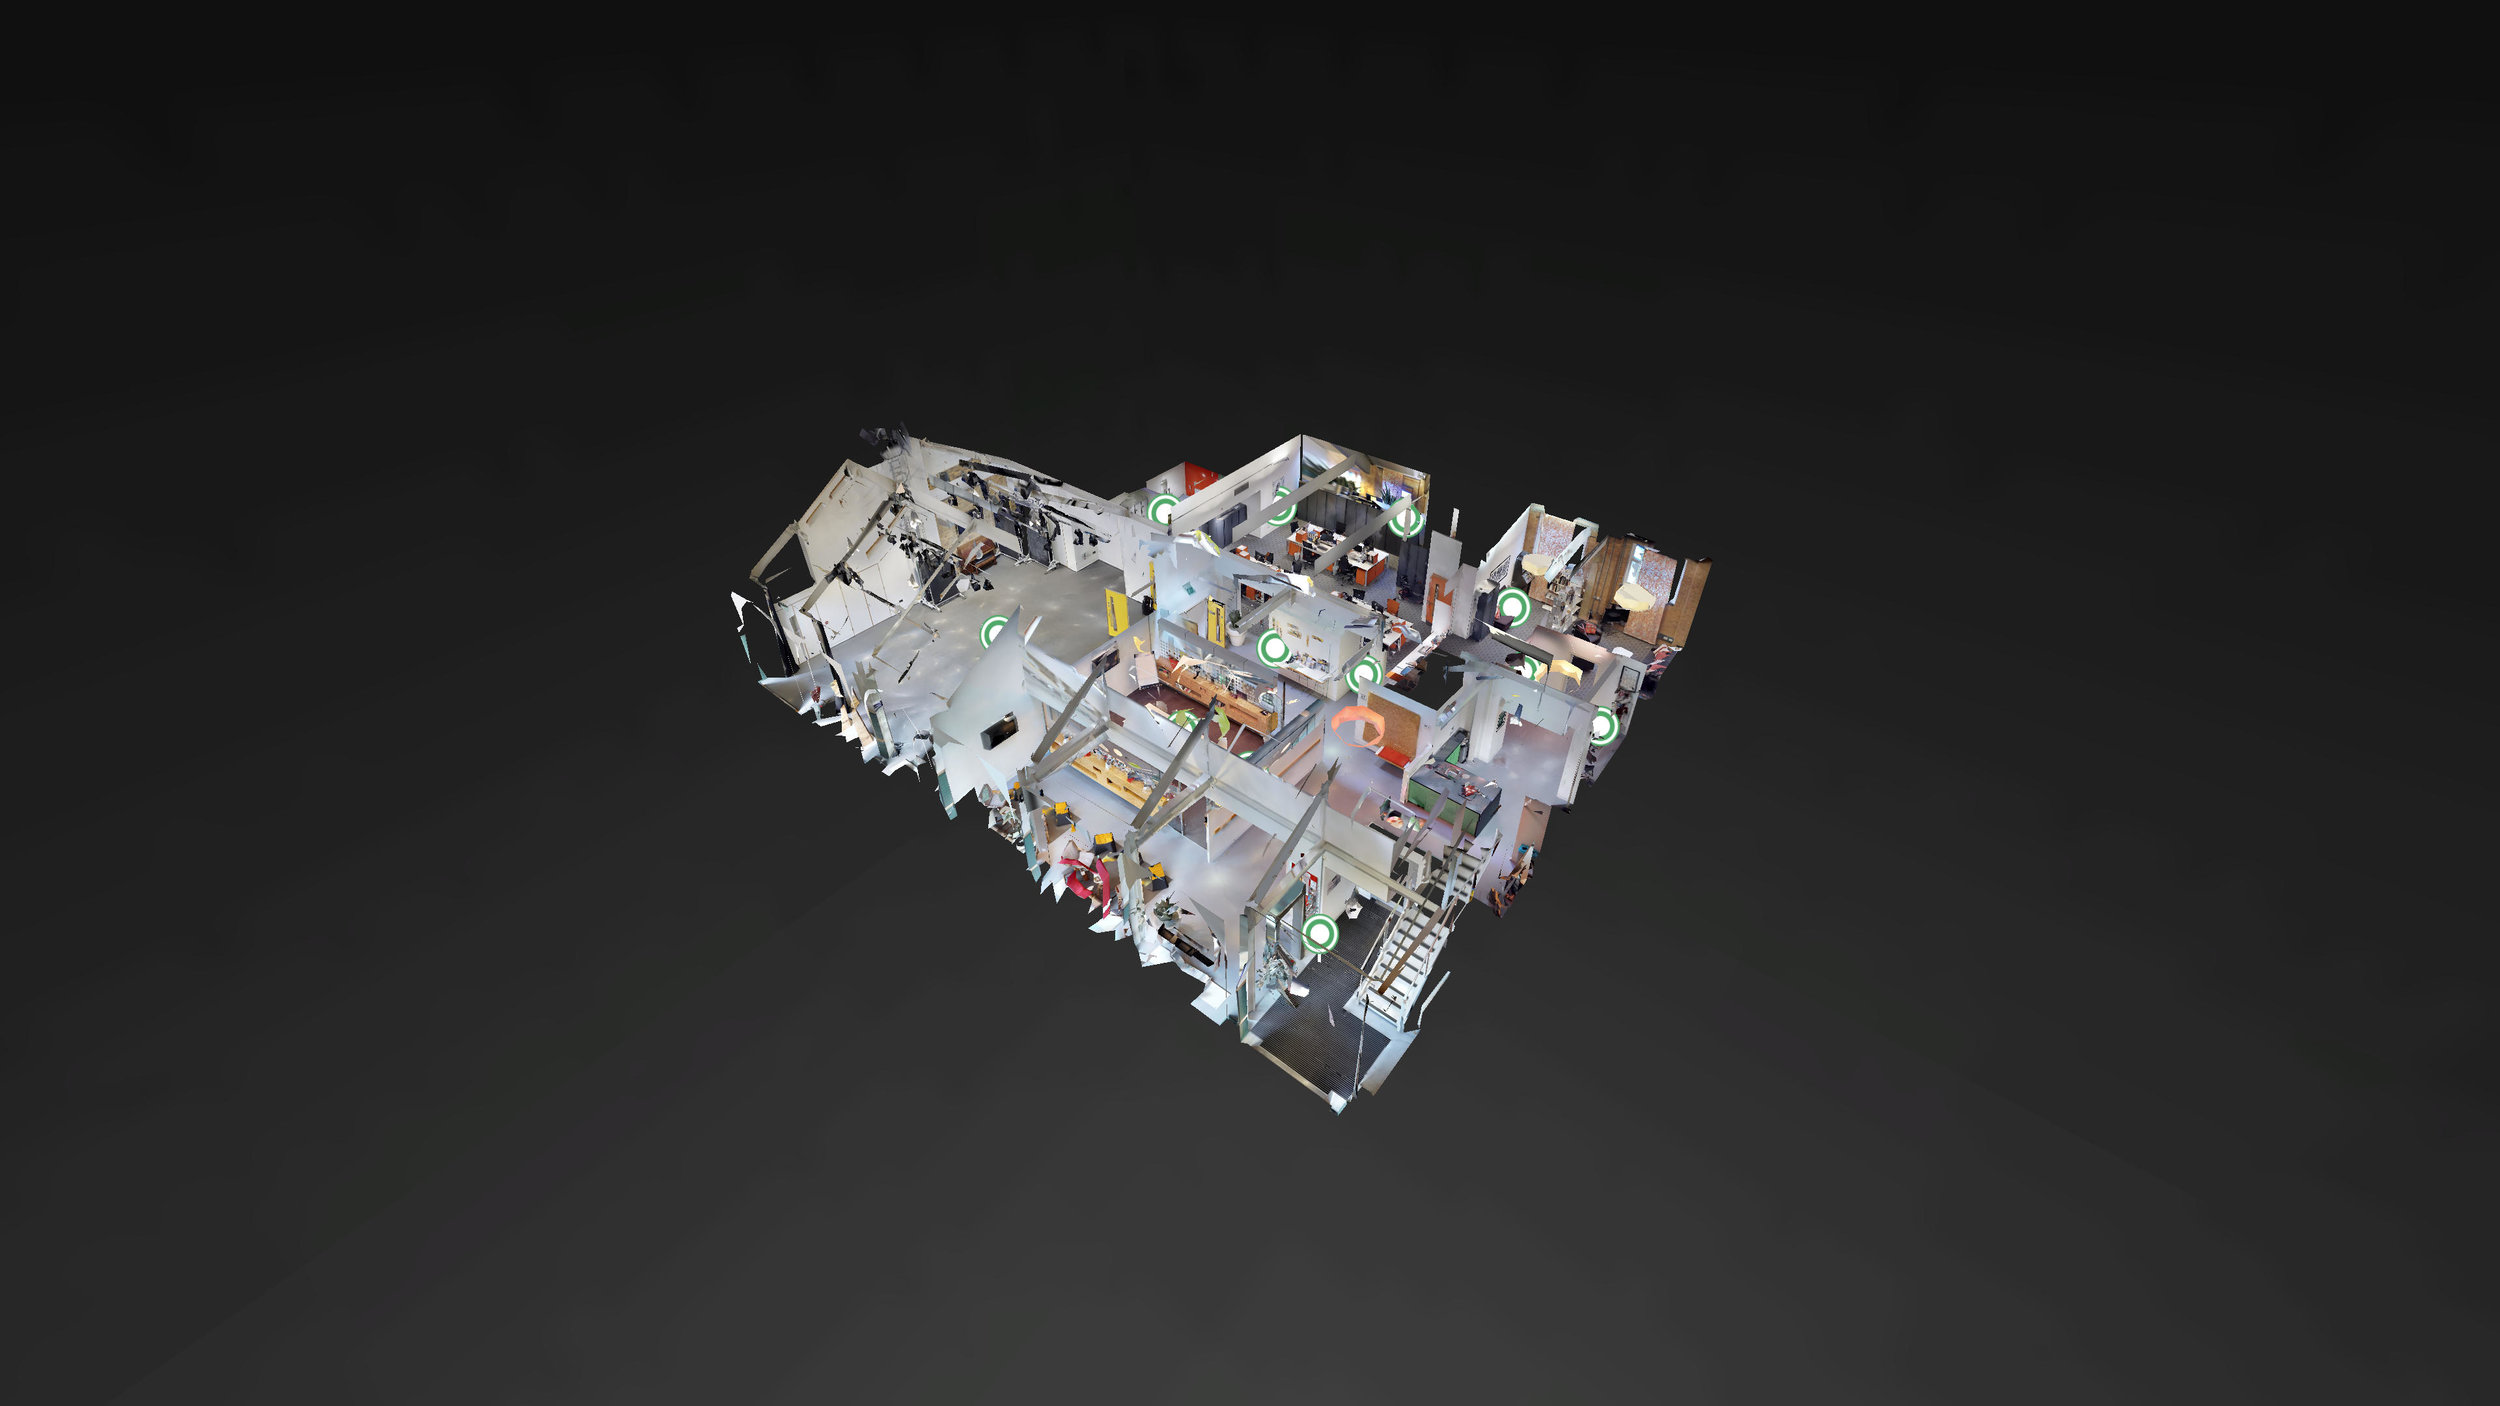 3D MODEL OF GRAEAE THEATRE COMPANY WITH INTERACTIVE HOTSPOTS